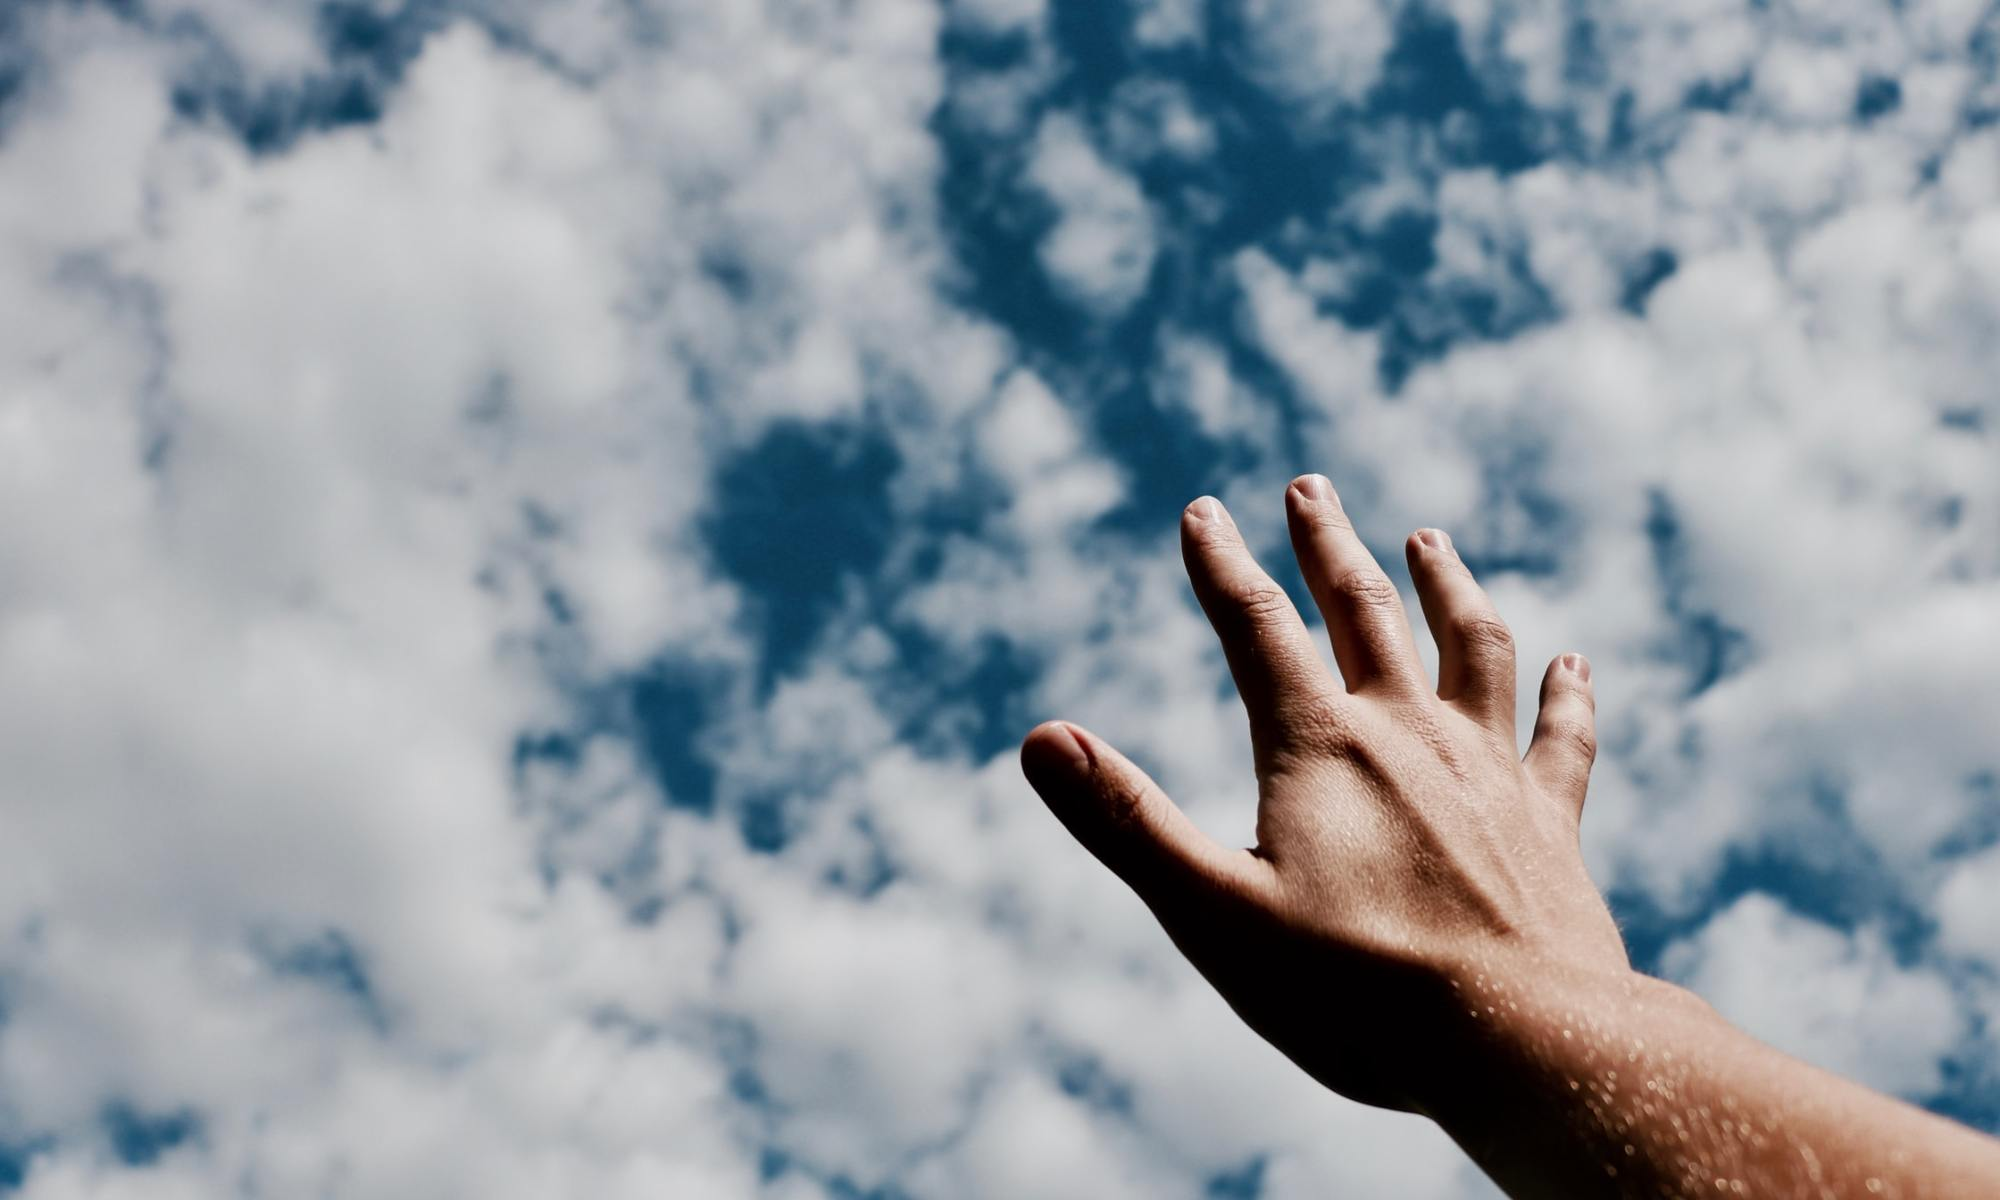 Person's hand reaching for the cloudy sky